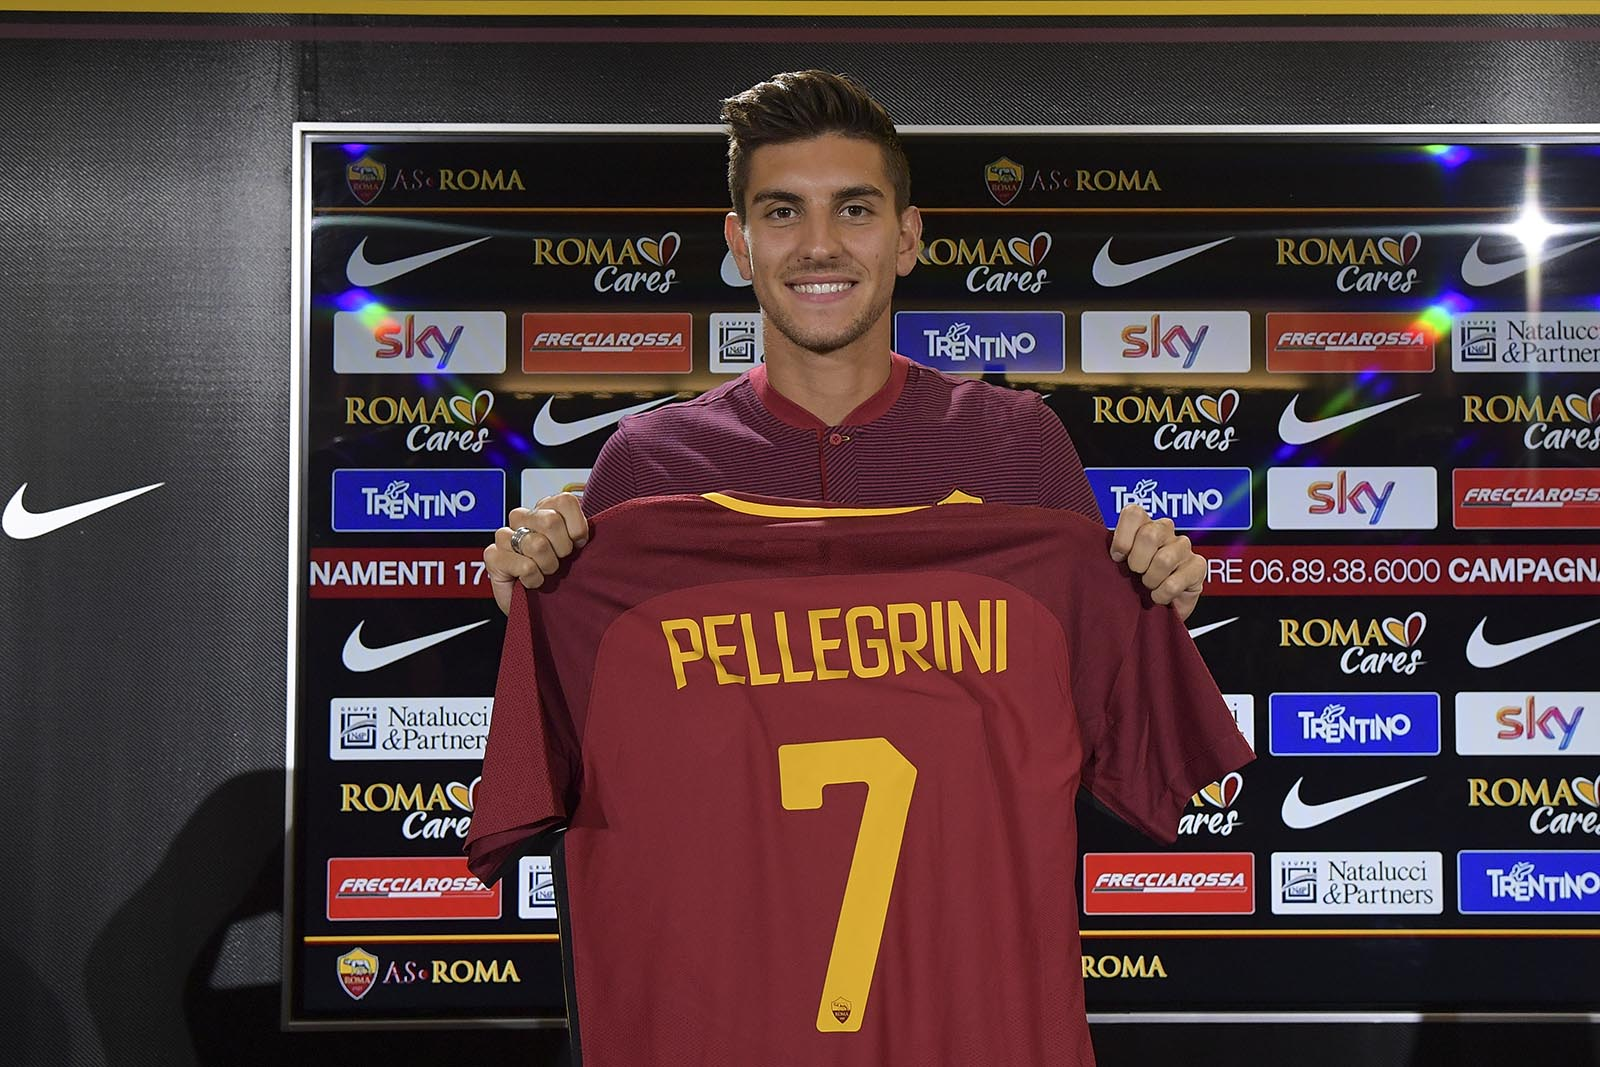 Lorenzo Pellegrini - AS Roma [image by @OfficialASRoma]